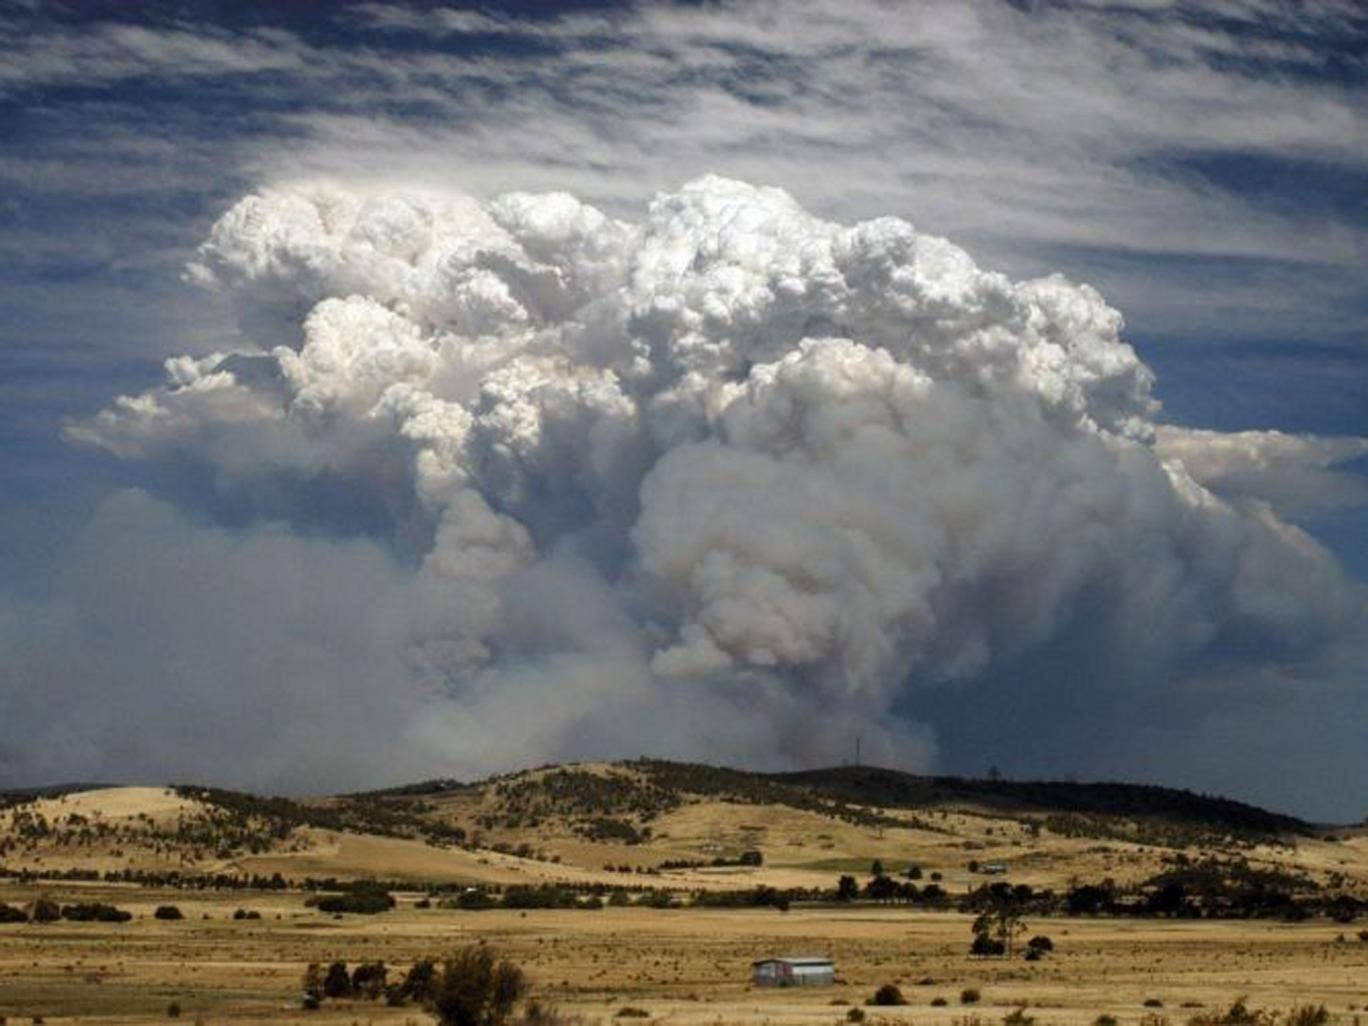 Smoke from a bushfire billows over hills near Forcett, about 25 kilometres (16 miles) east of Hobart